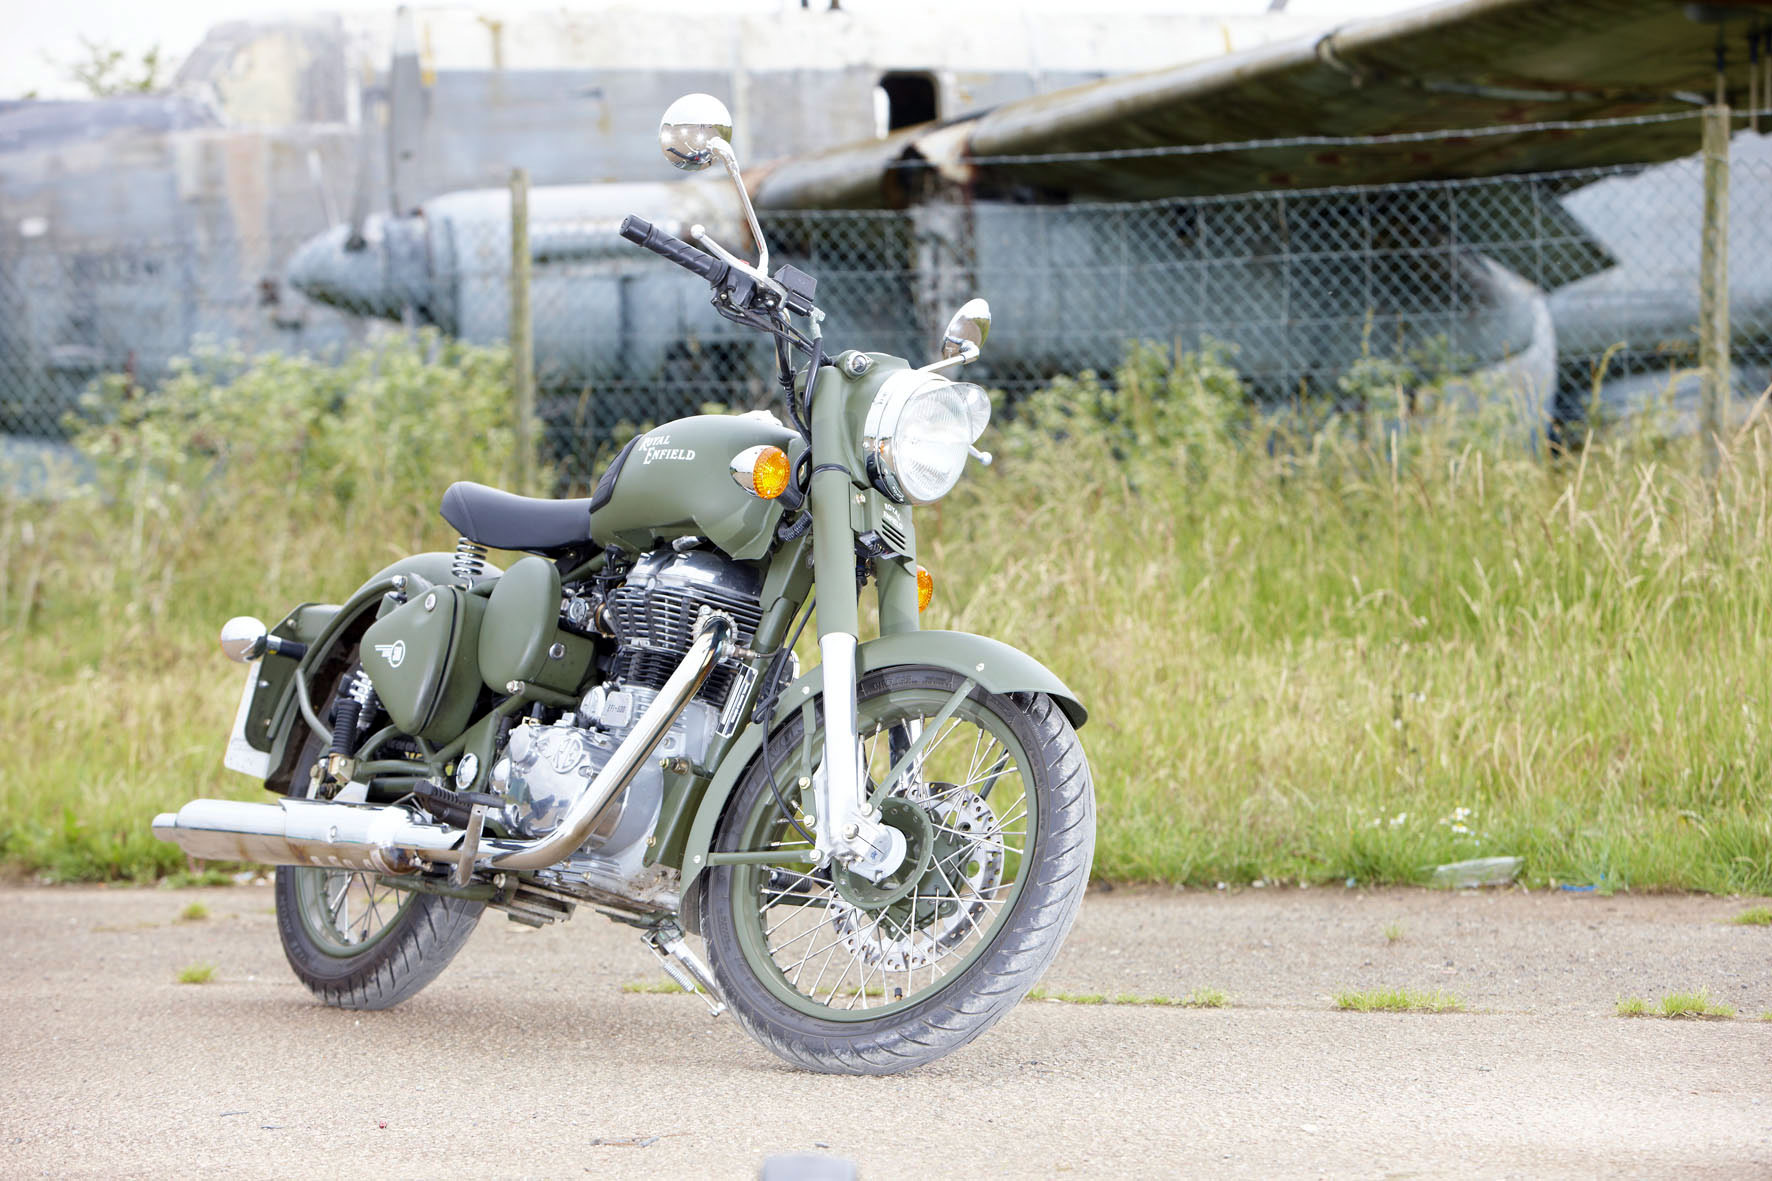 Royal Enfield Bullet 350 Army 2002 images #123581